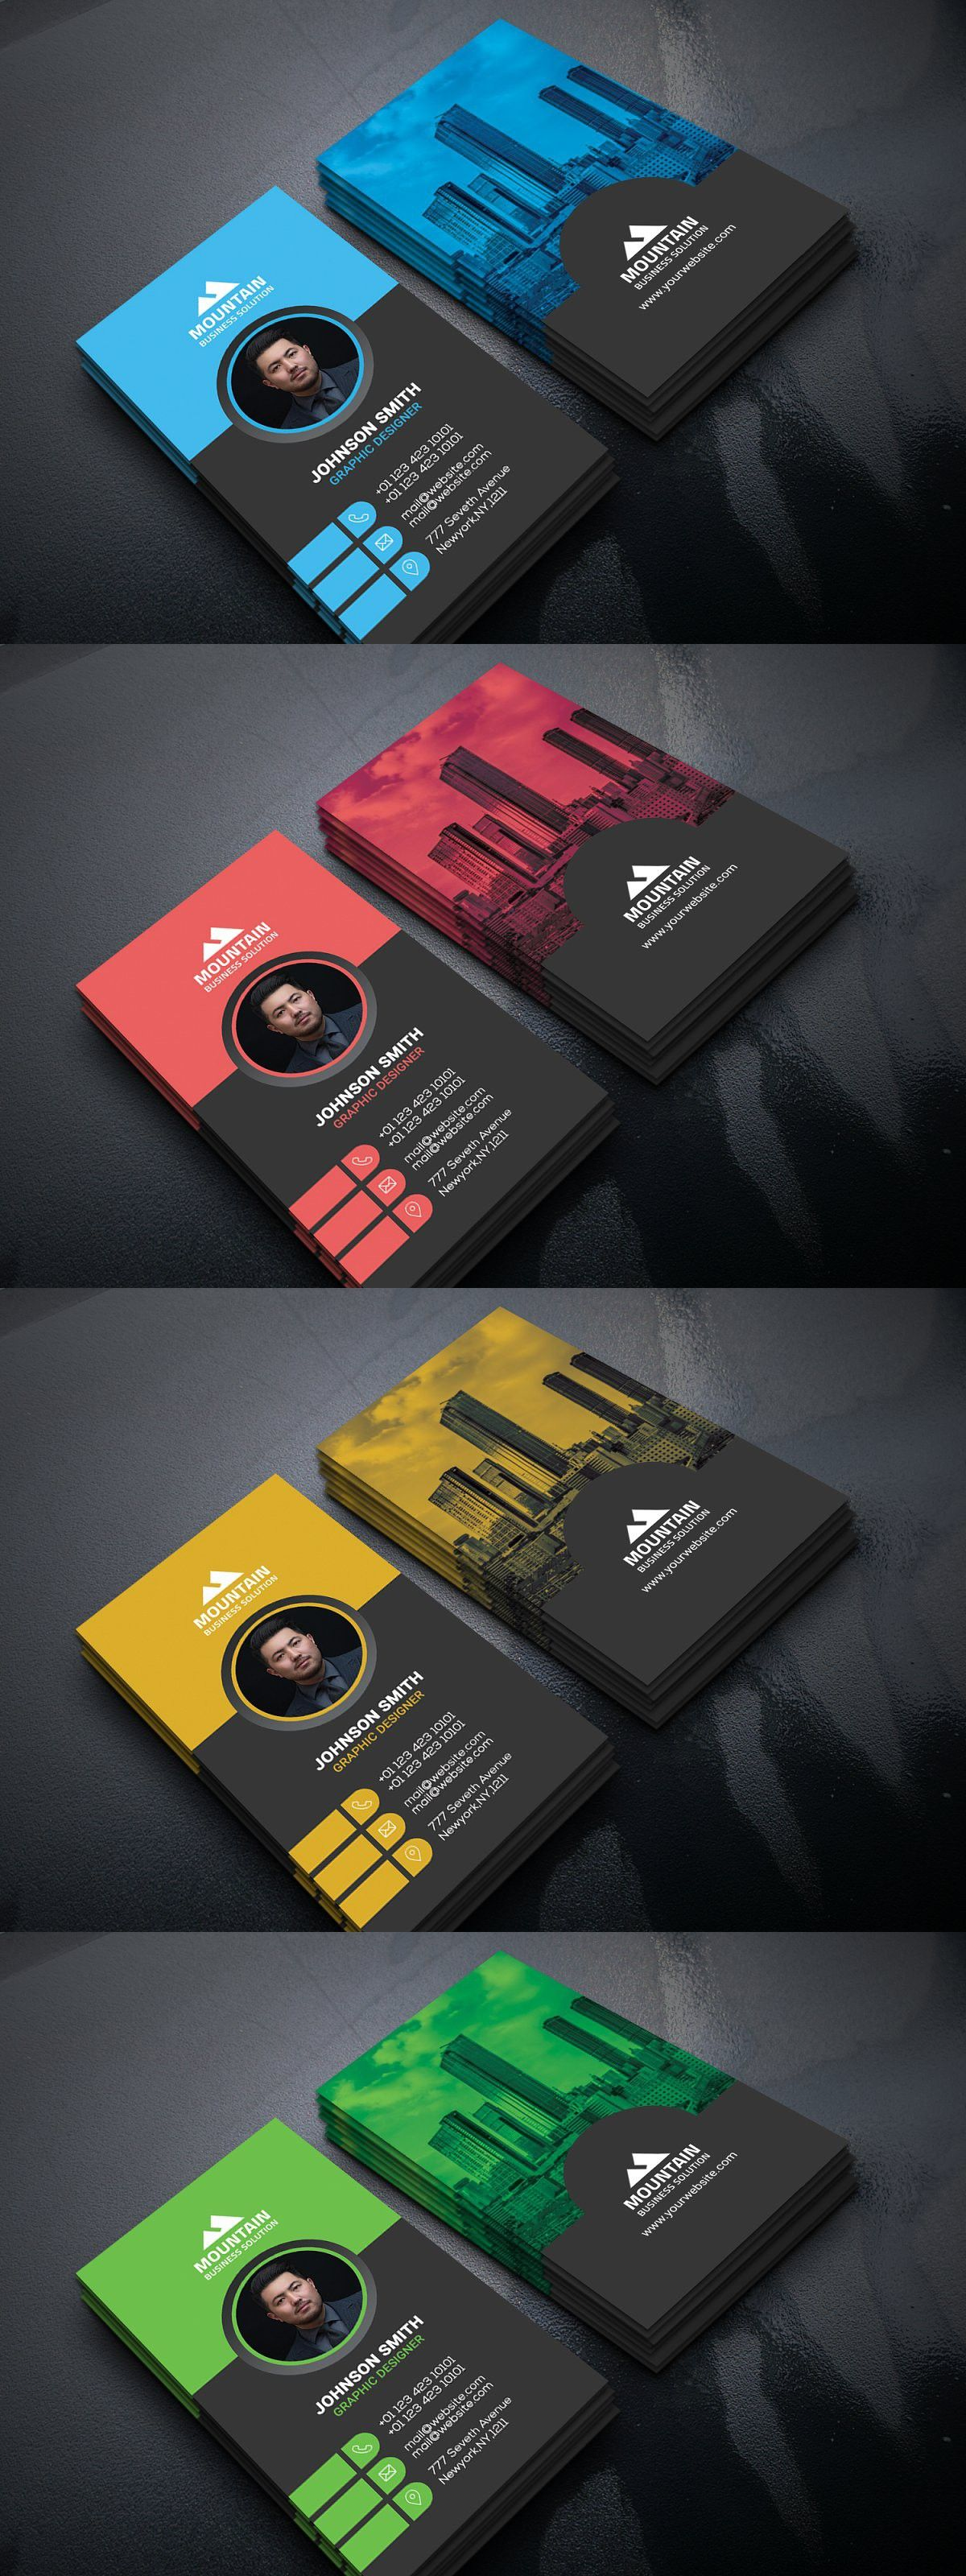 Factory Industrial Business Card Construction Business Cards Business Card Design Company Business Cards